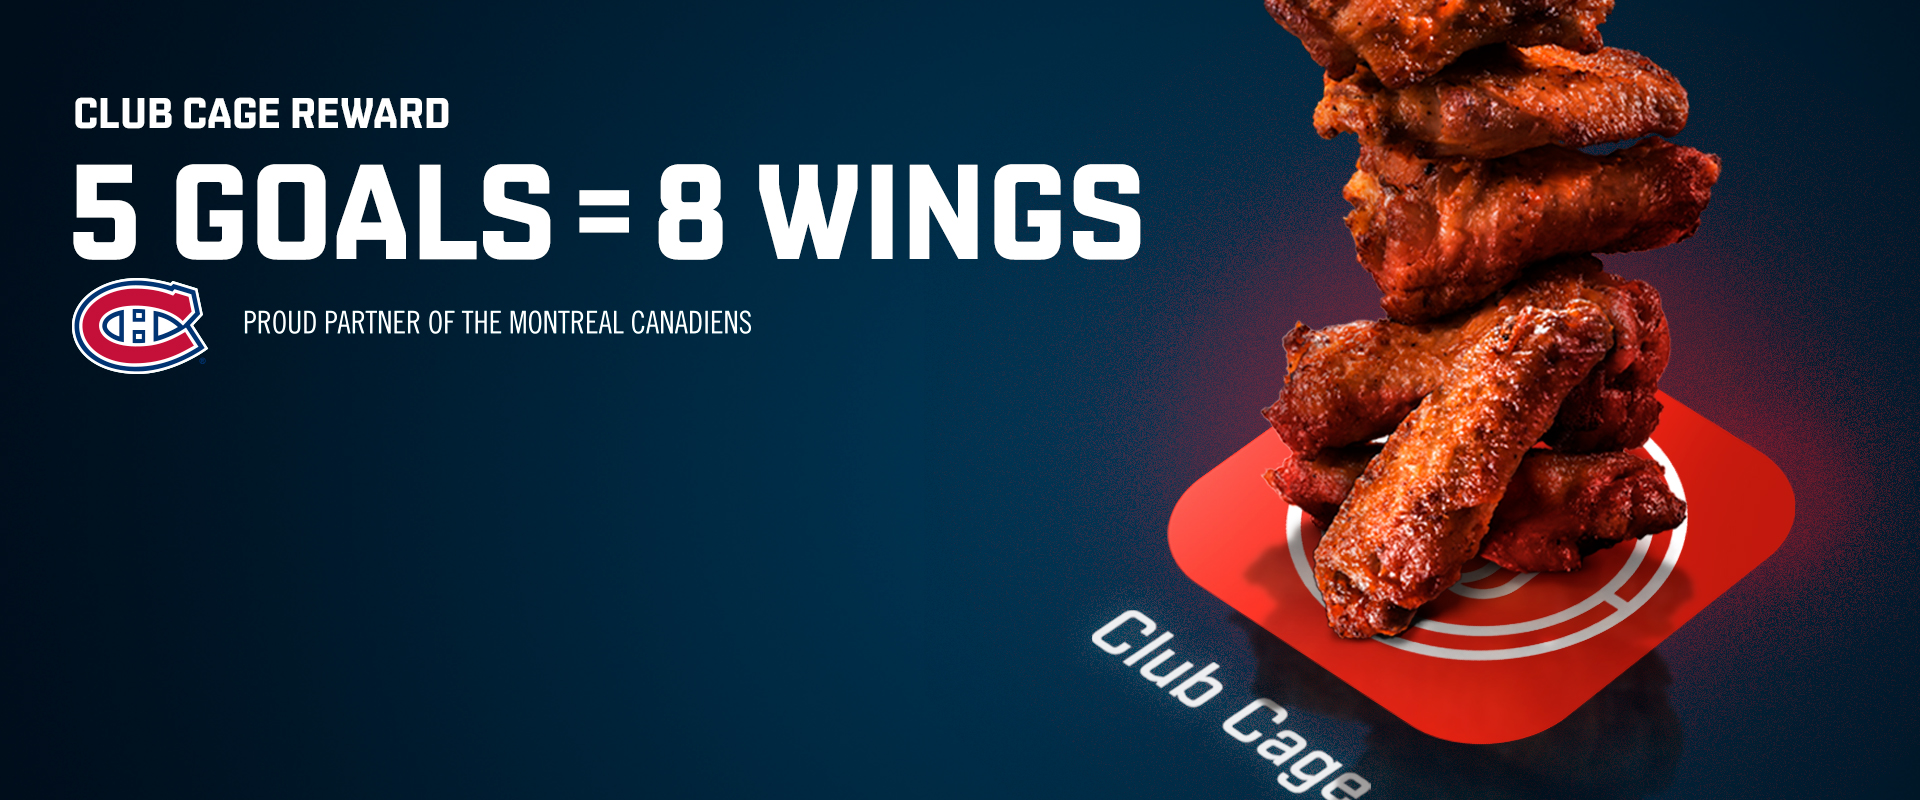 5 goals = 8 free wings reward